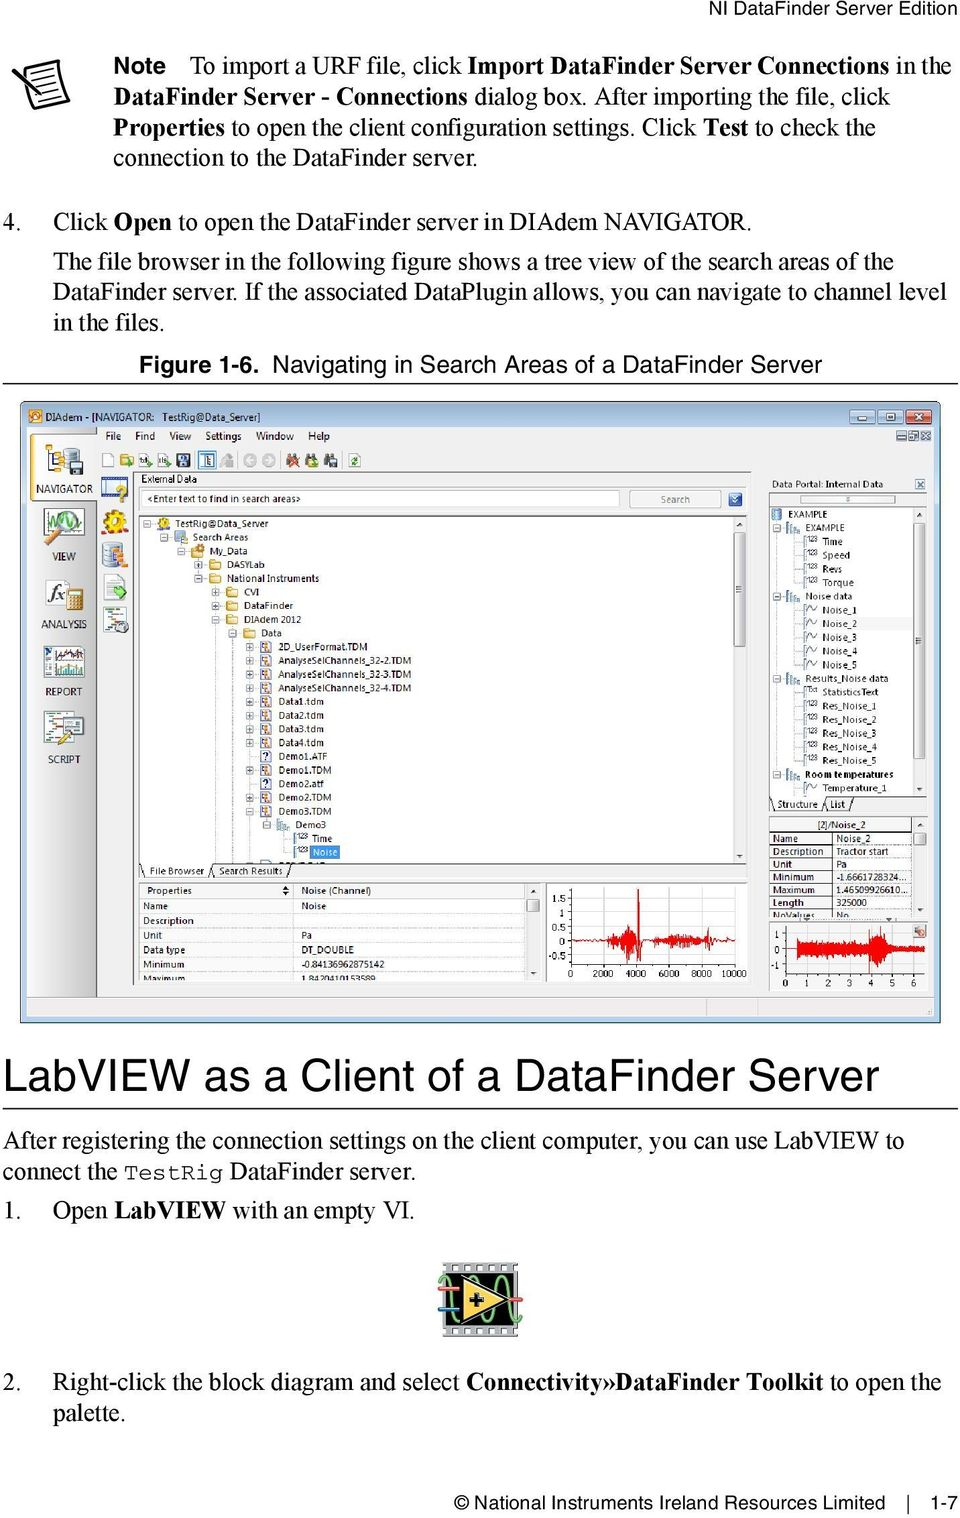 Click Open to open the DataFinder server in DIAdem NAVIGATOR. The file browser in the following figure shows a tree view of the search areas of the DataFinder server.